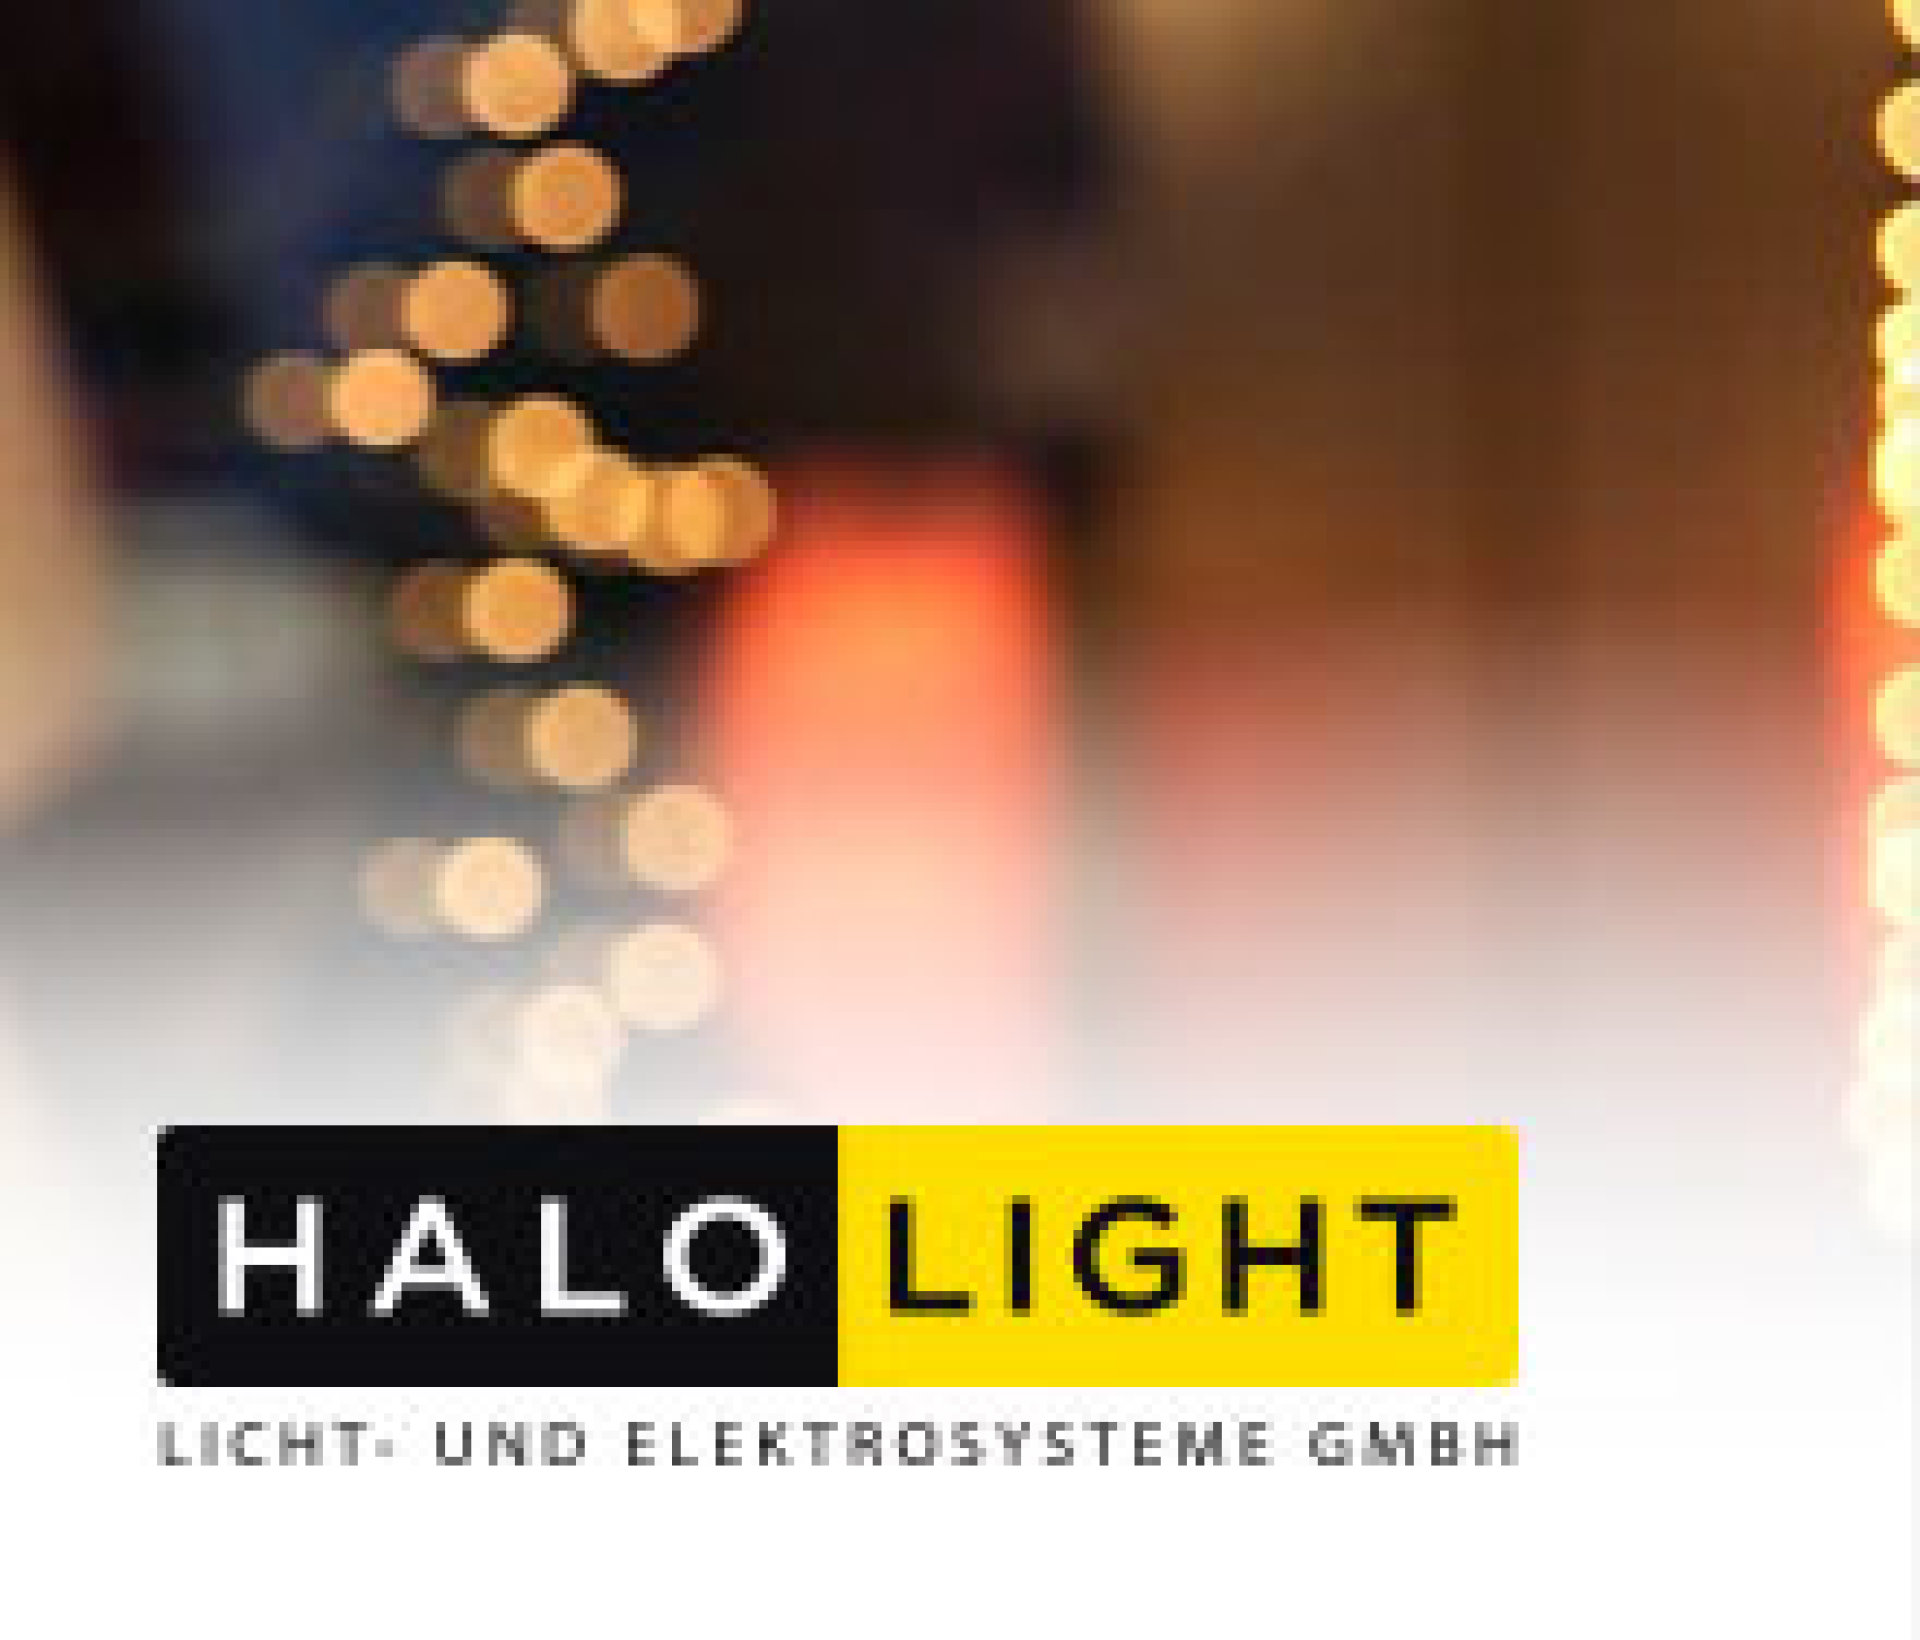 Halolight